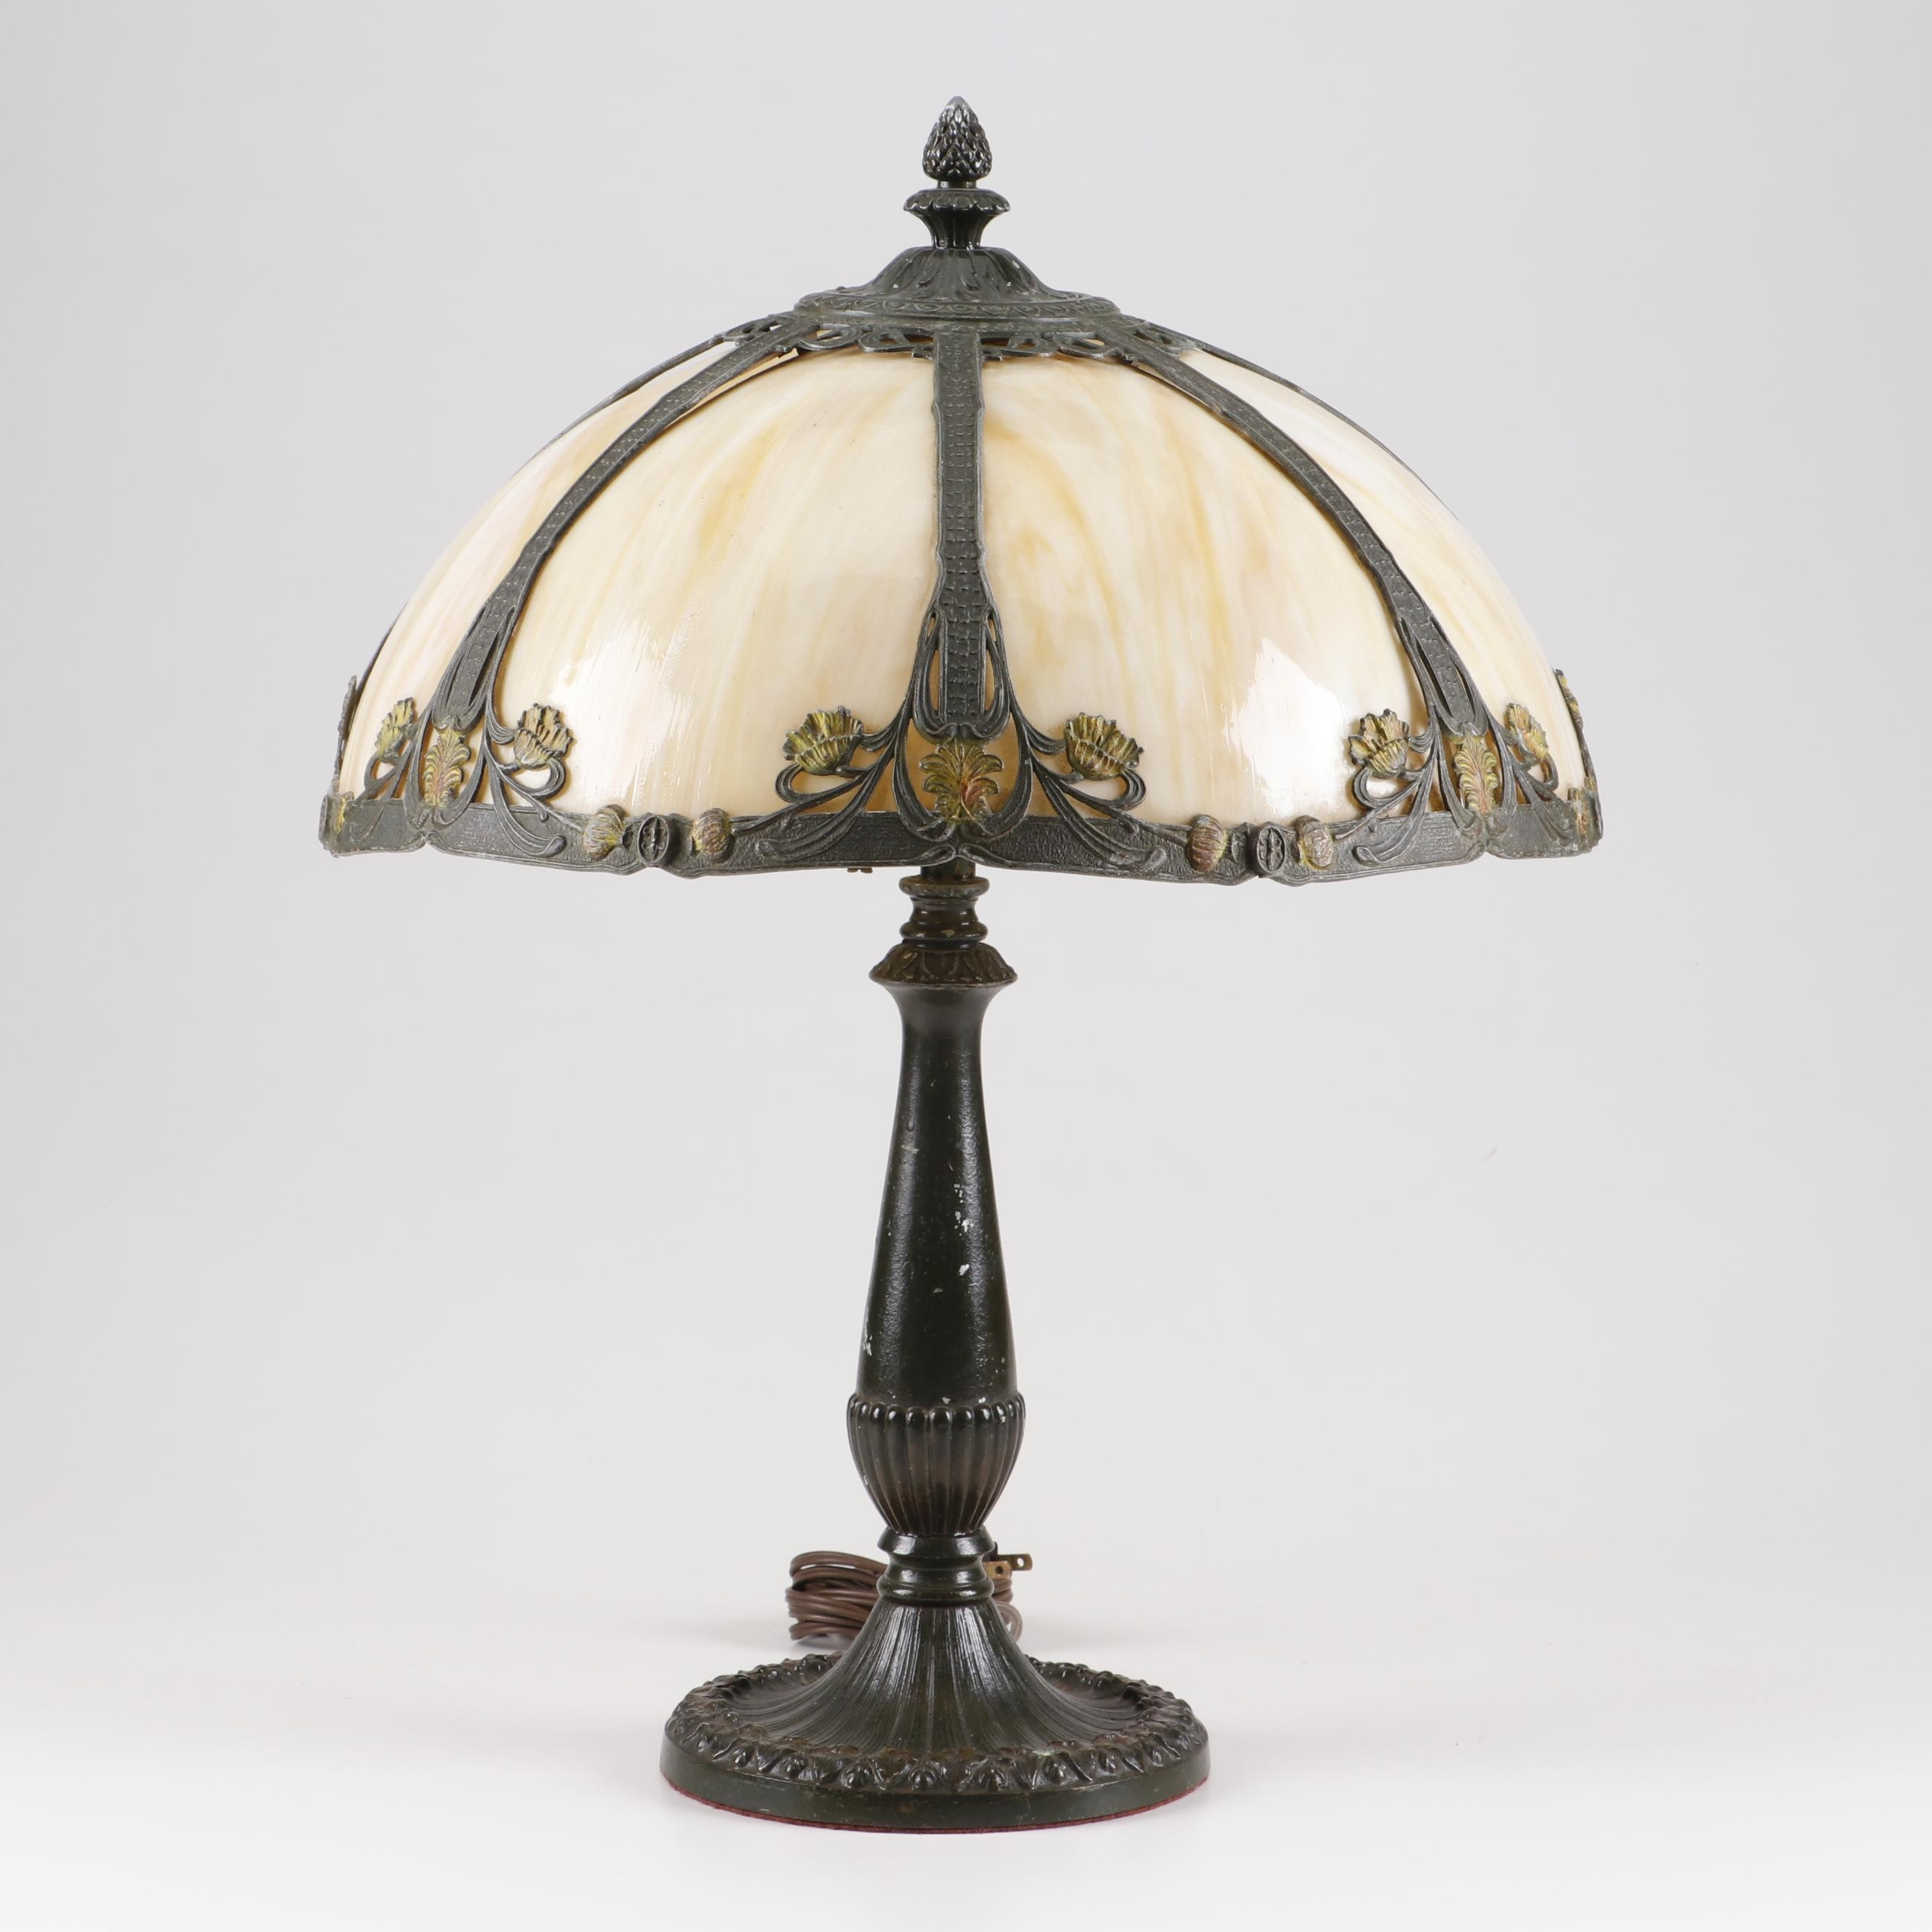 Art Nouveau Metal Table Lamp with Slag Glass Overlay Shade After Miller, 20th C